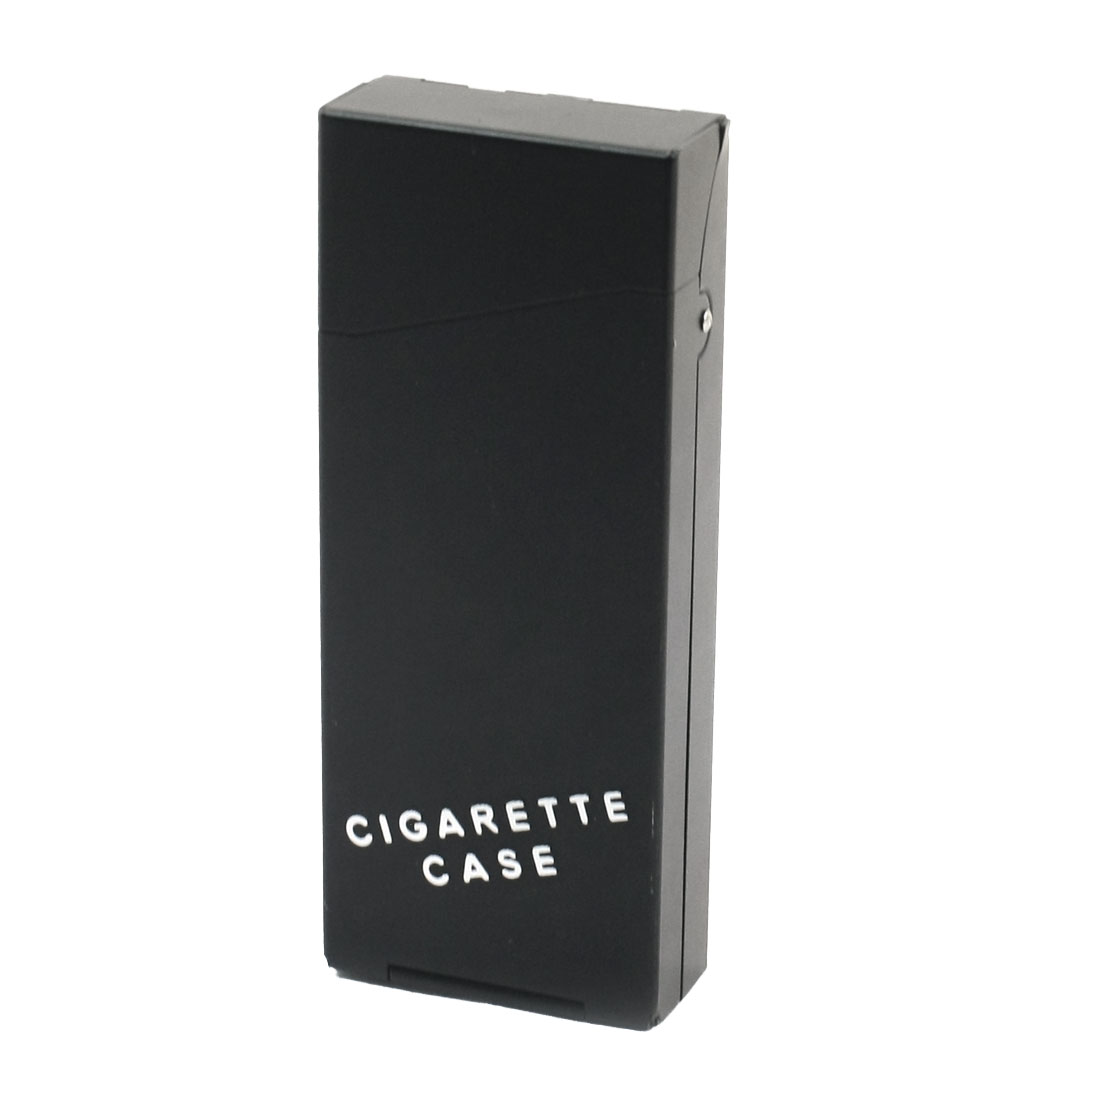 Black Metal Rectangular 10.8cm x 4.3cm x 1.8cm Spring Loaded Hinge Case Box Container Holder for 20 Pcs Cigarette